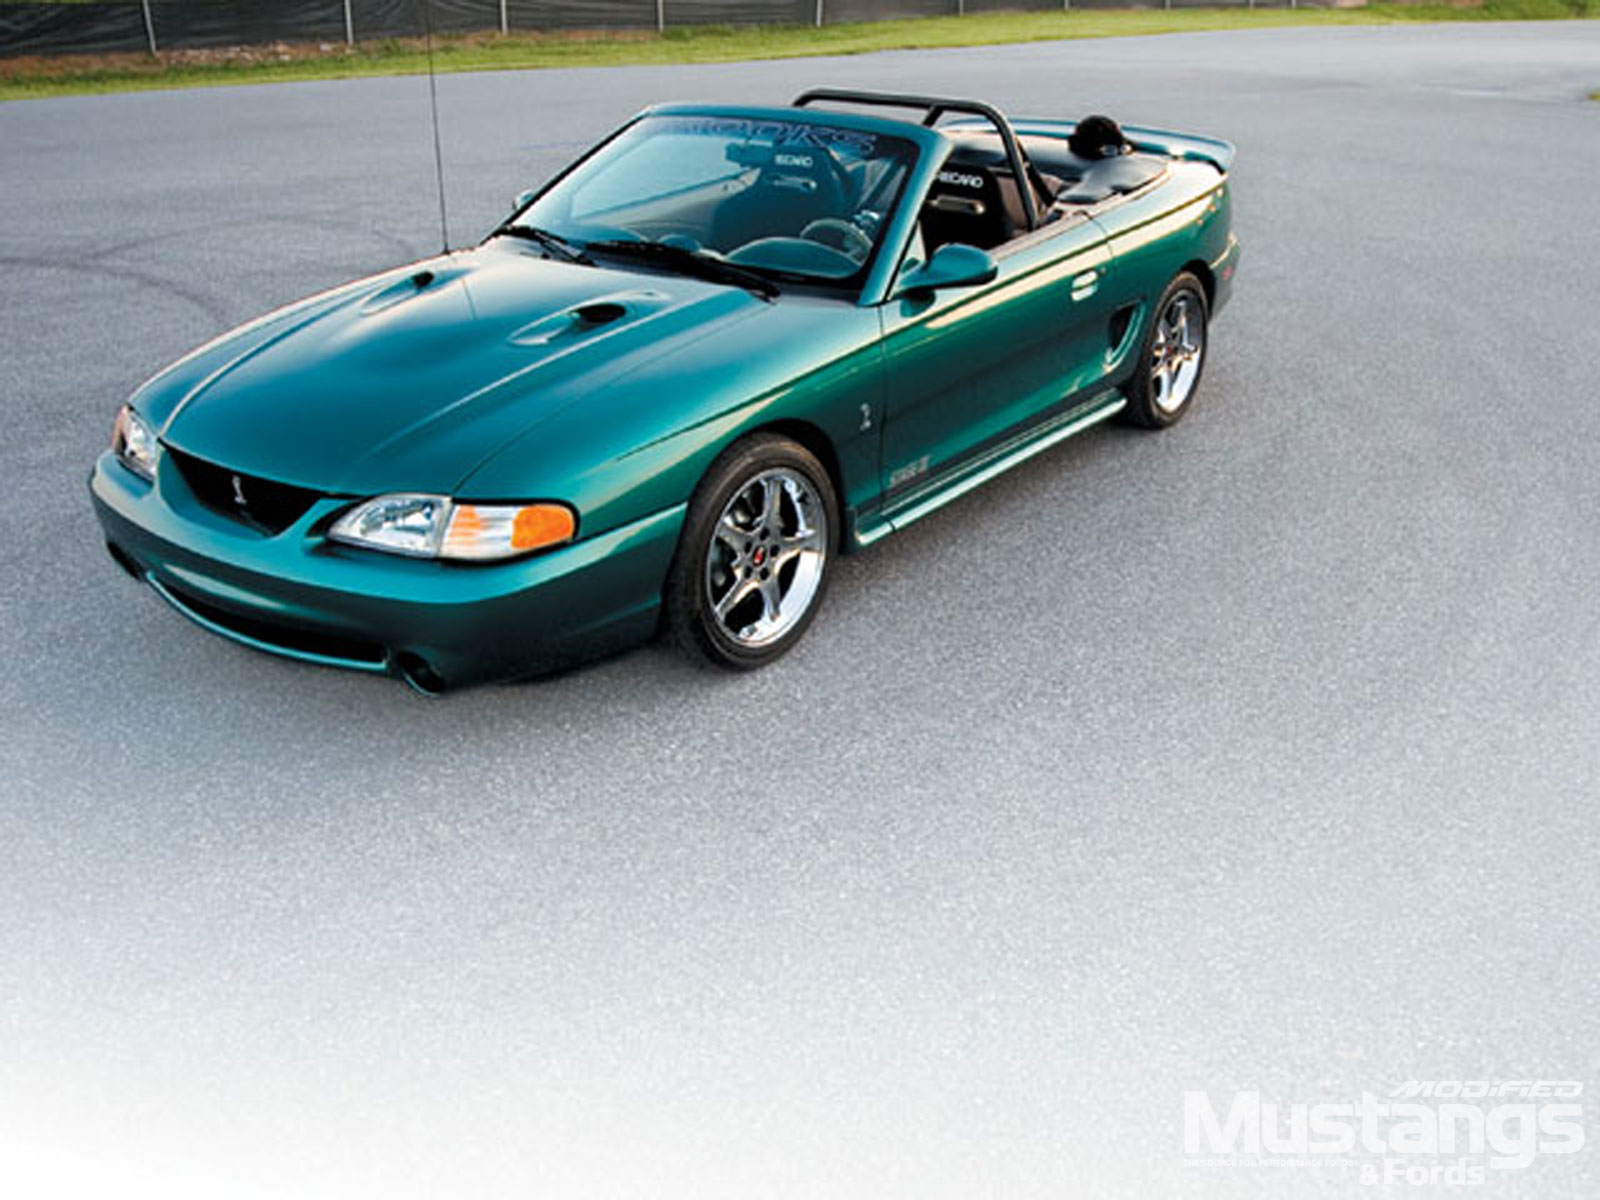 1997 Ford SVT Mustang Cobra Side Angle